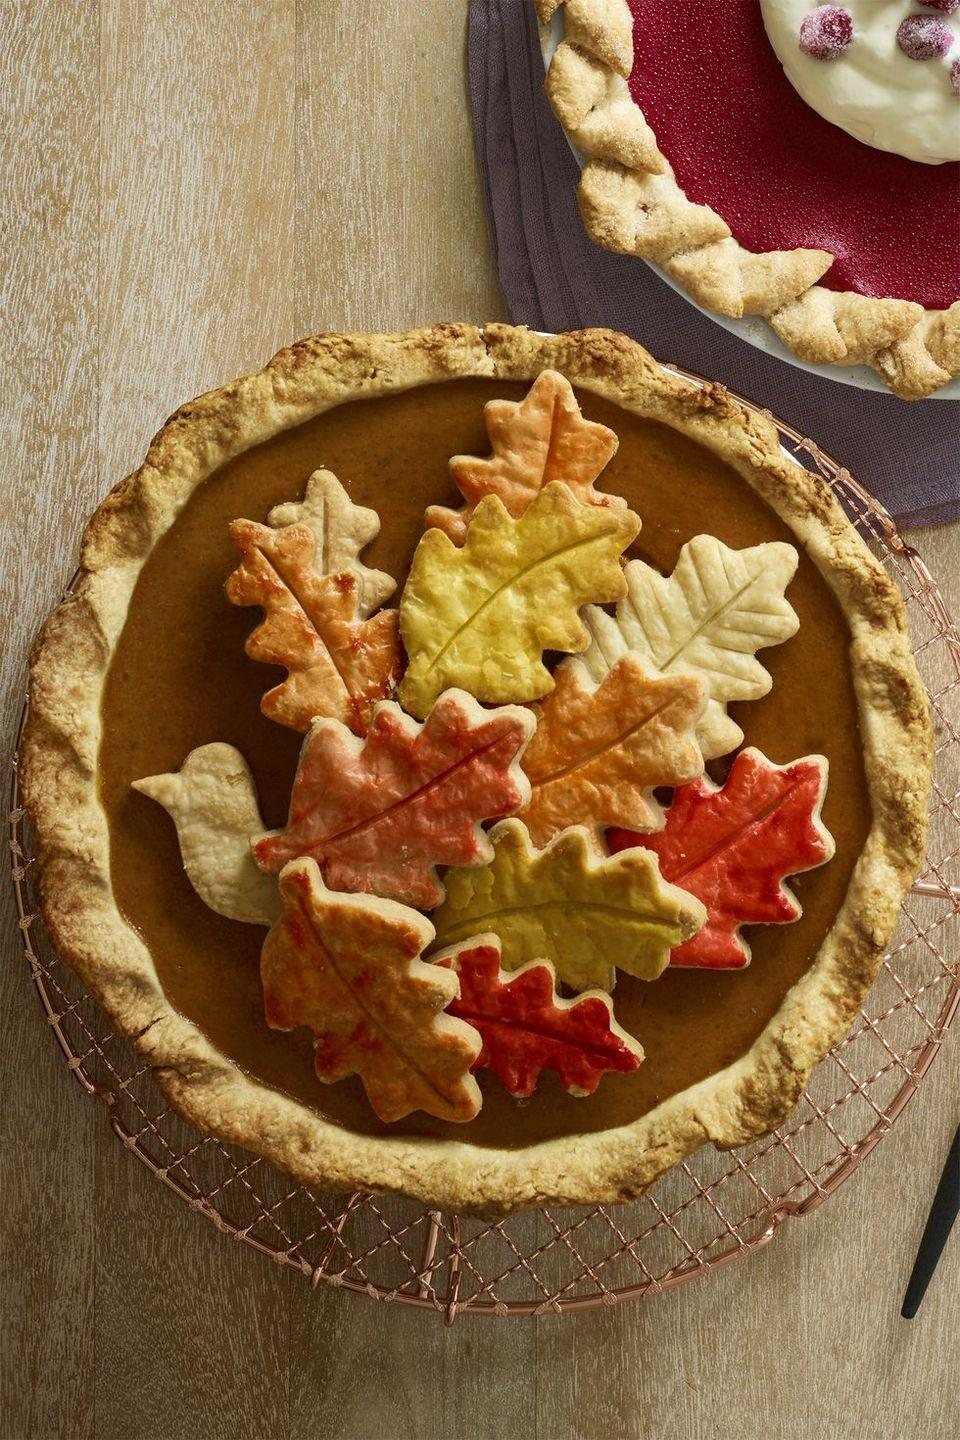 """<p>Looking for a more autumn take for a Halloween dessert? Look no further than this beautiful and festive pumpkin pie.</p><p><em><a href=""""https://www.womansday.com/food-recipes/food-drinks/recipes/a60507/chai-pumpkin-pie-recipe/"""" rel=""""nofollow noopener"""" target=""""_blank"""" data-ylk=""""slk:Get the Chai Pumpkin Pie recipe."""" class=""""link rapid-noclick-resp""""><strong>Get the Chai Pumpkin Pie recipe. </strong></a></em></p>"""